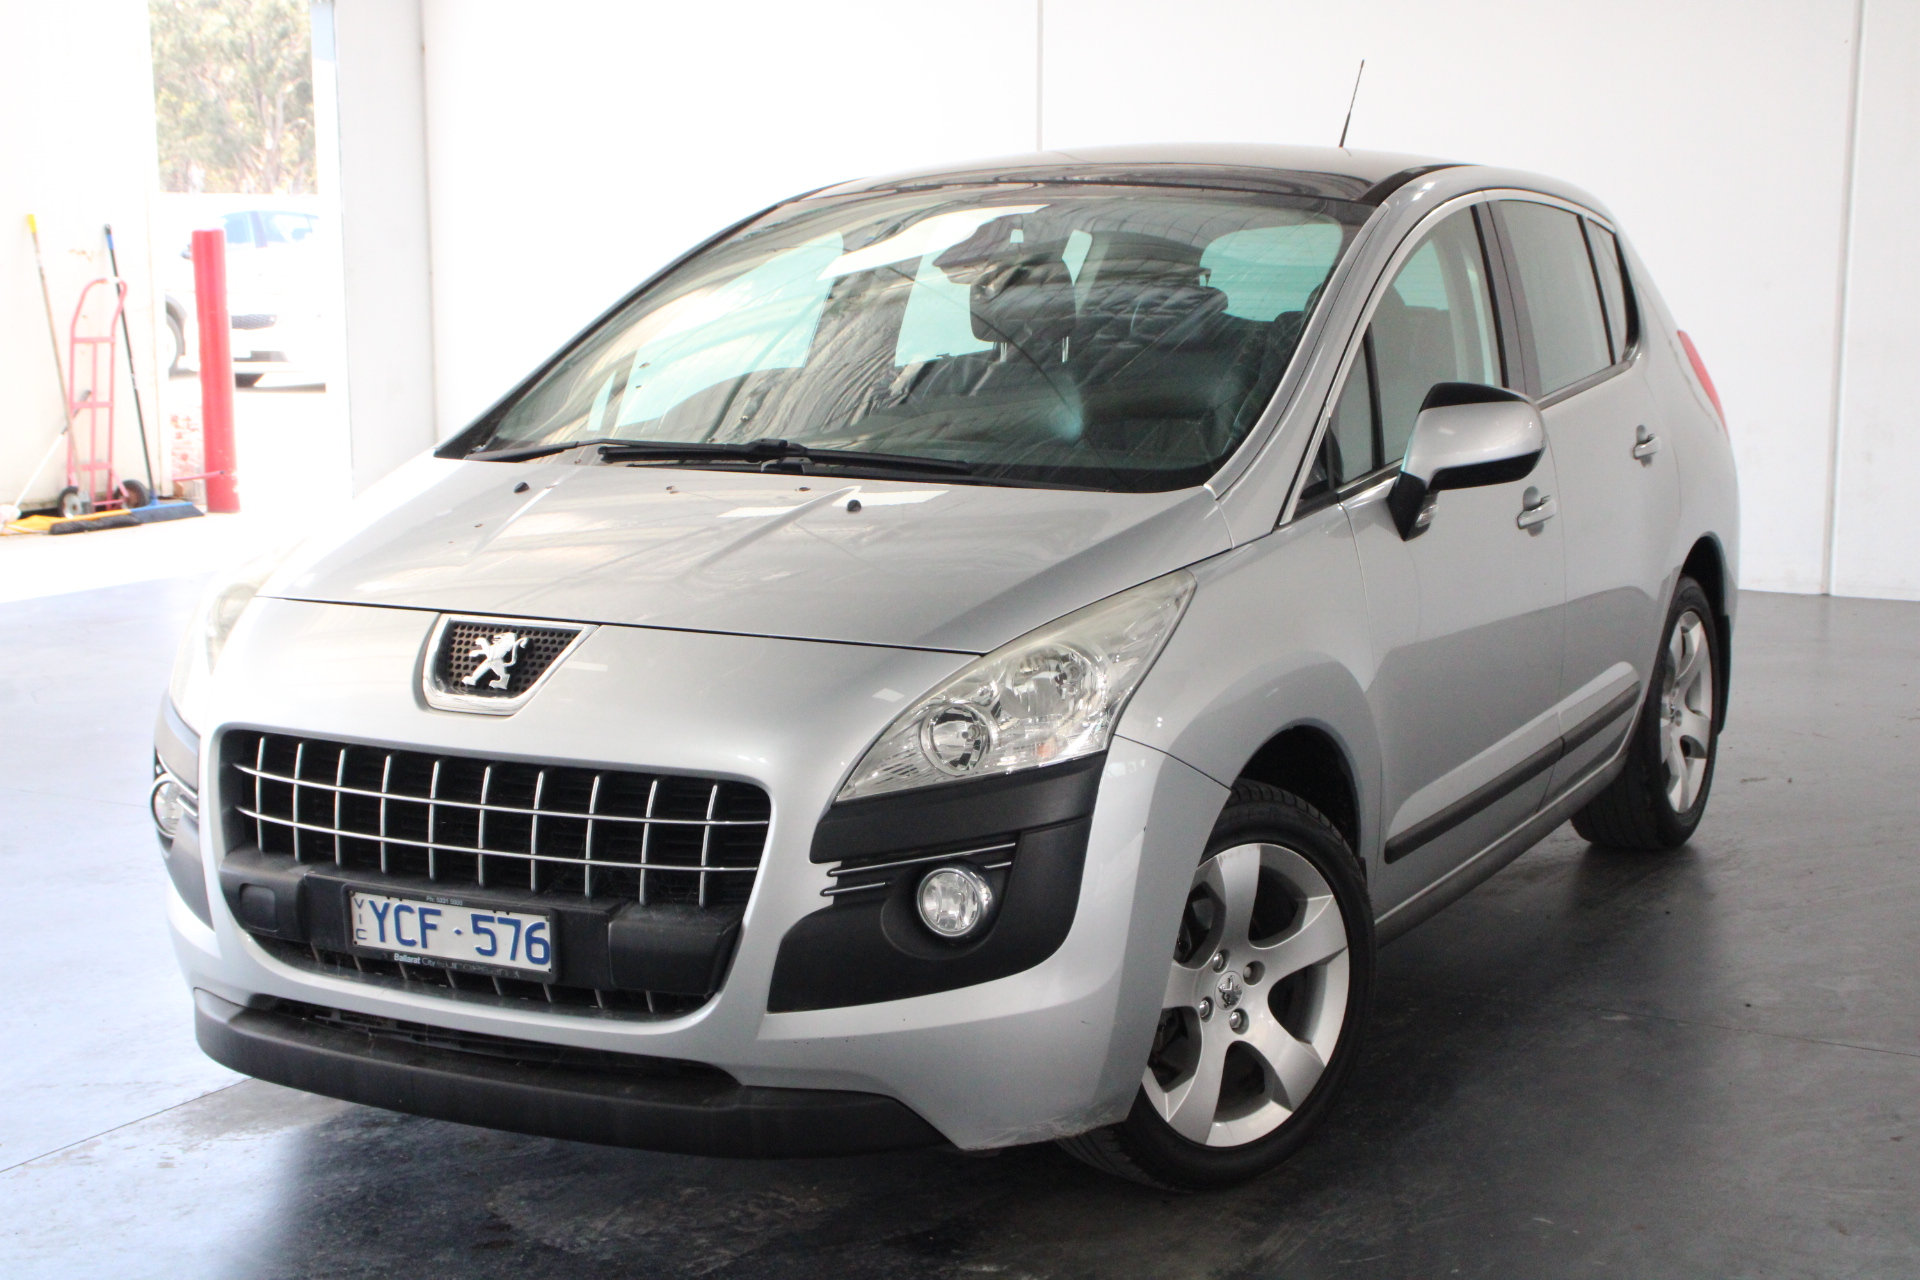 2010 Peugeot 3008 XSE 1.6 HDI Turbo Diesel Auto Hatchback